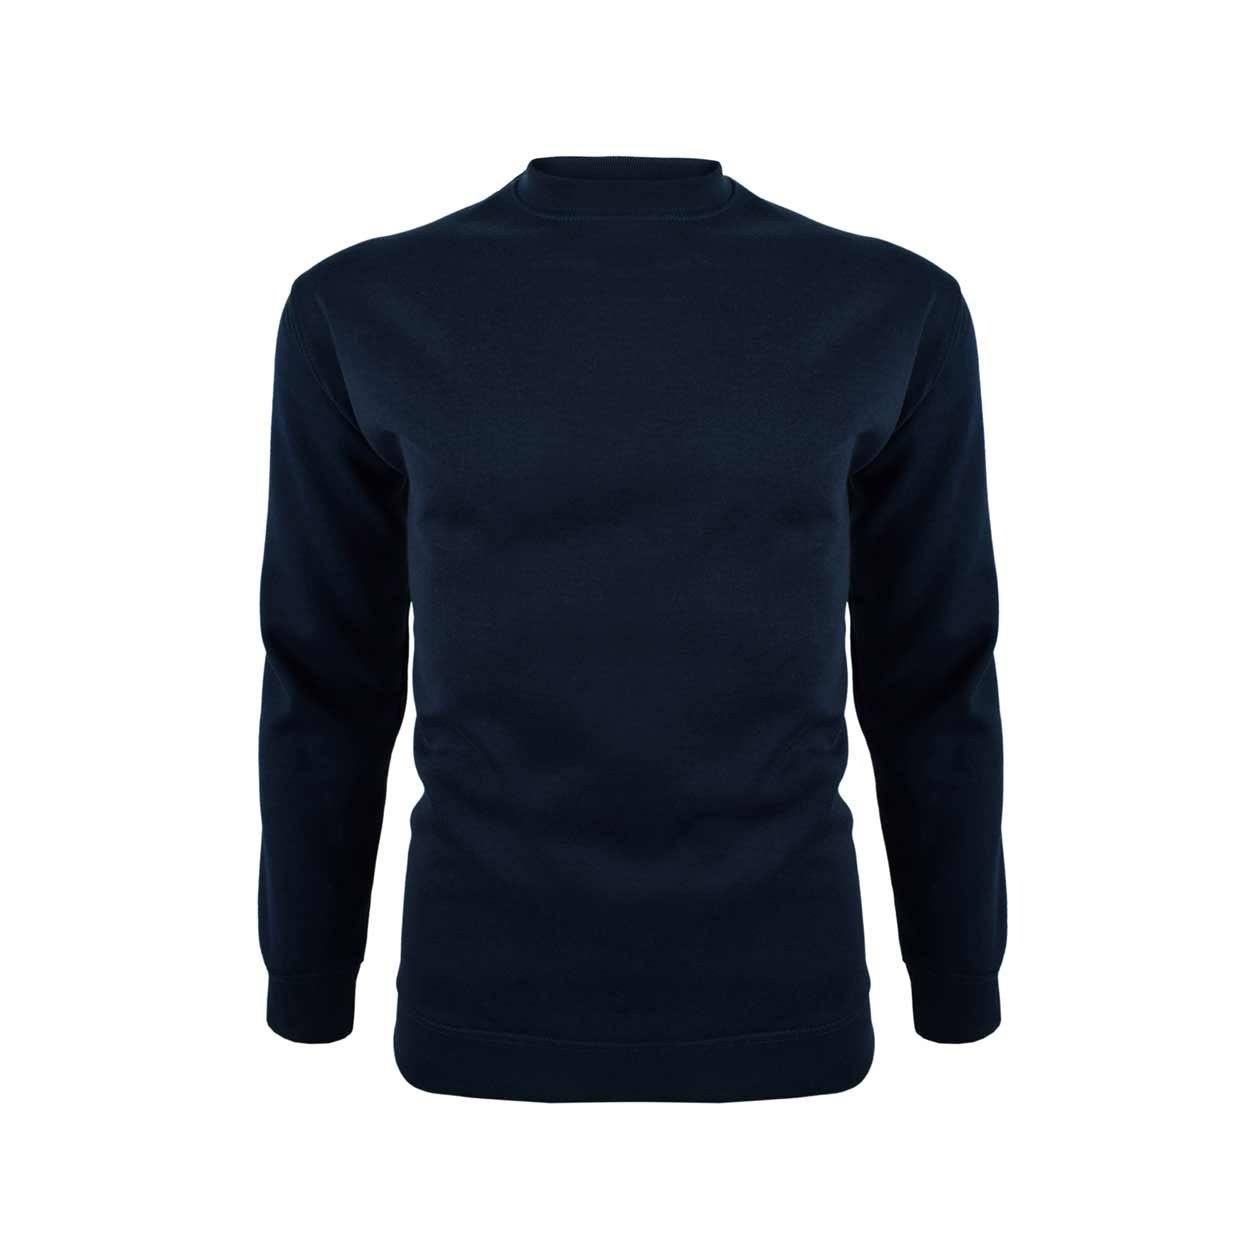 DCK B Quality Crew Neck Sweat Shirt B Quality Image Navy S